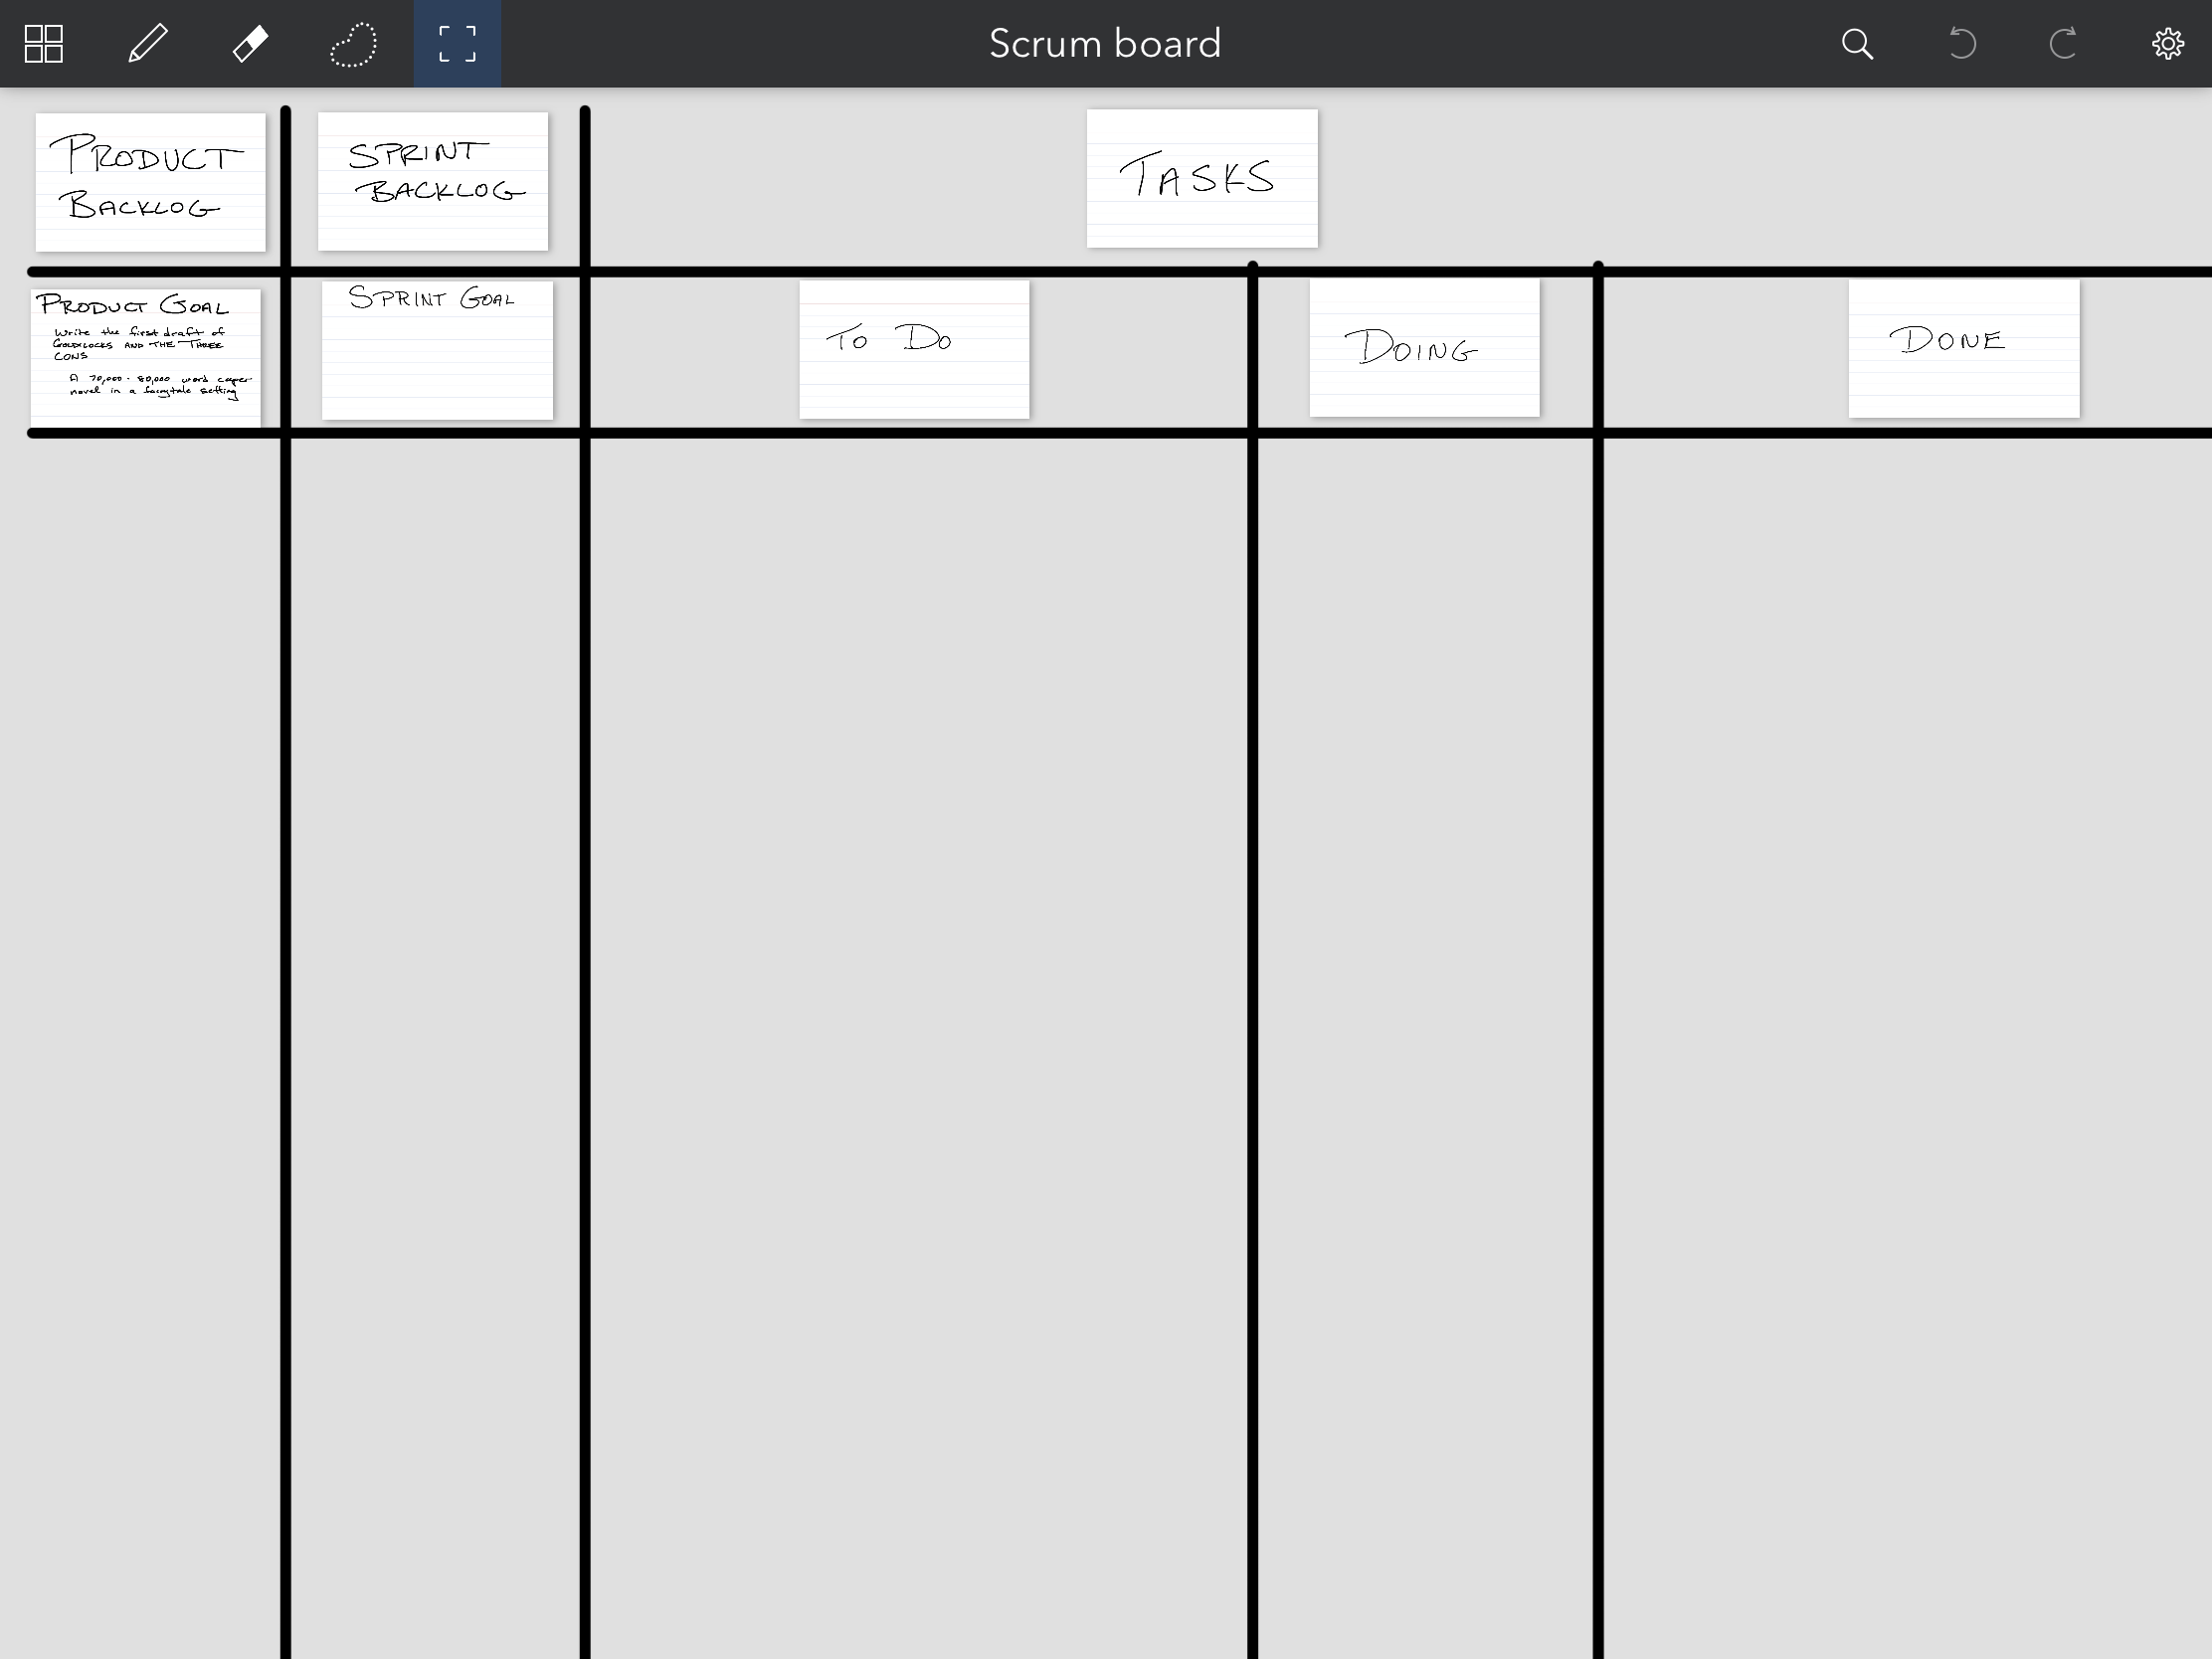 A Scrum board laid out with three rows and several columns for Product Backlog, Sprint Backlog, and tasks